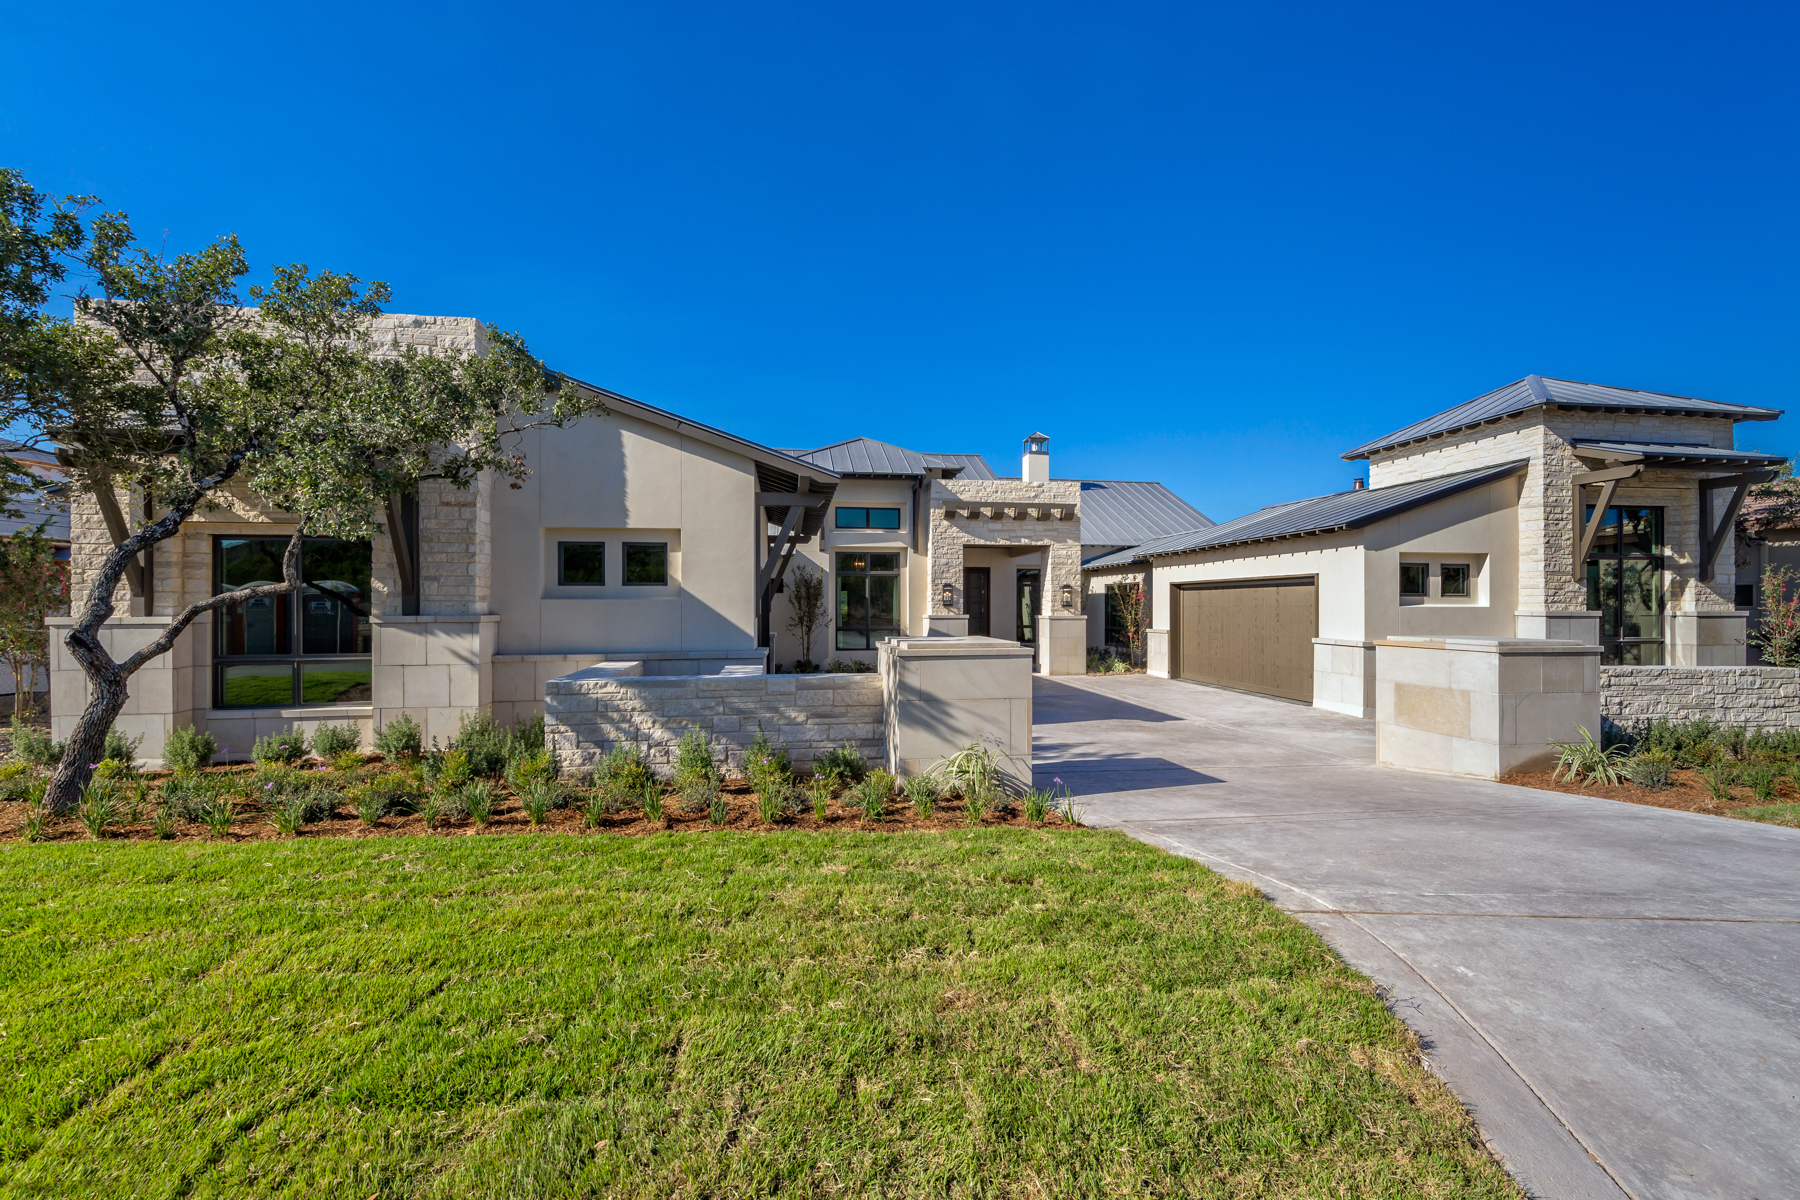 獨棟家庭住宅 為 出售 在 Award-Winning Dominion Parade Home 24507 Cliff Line The Dominion, San Antonio, 德克薩斯州 78257 美國